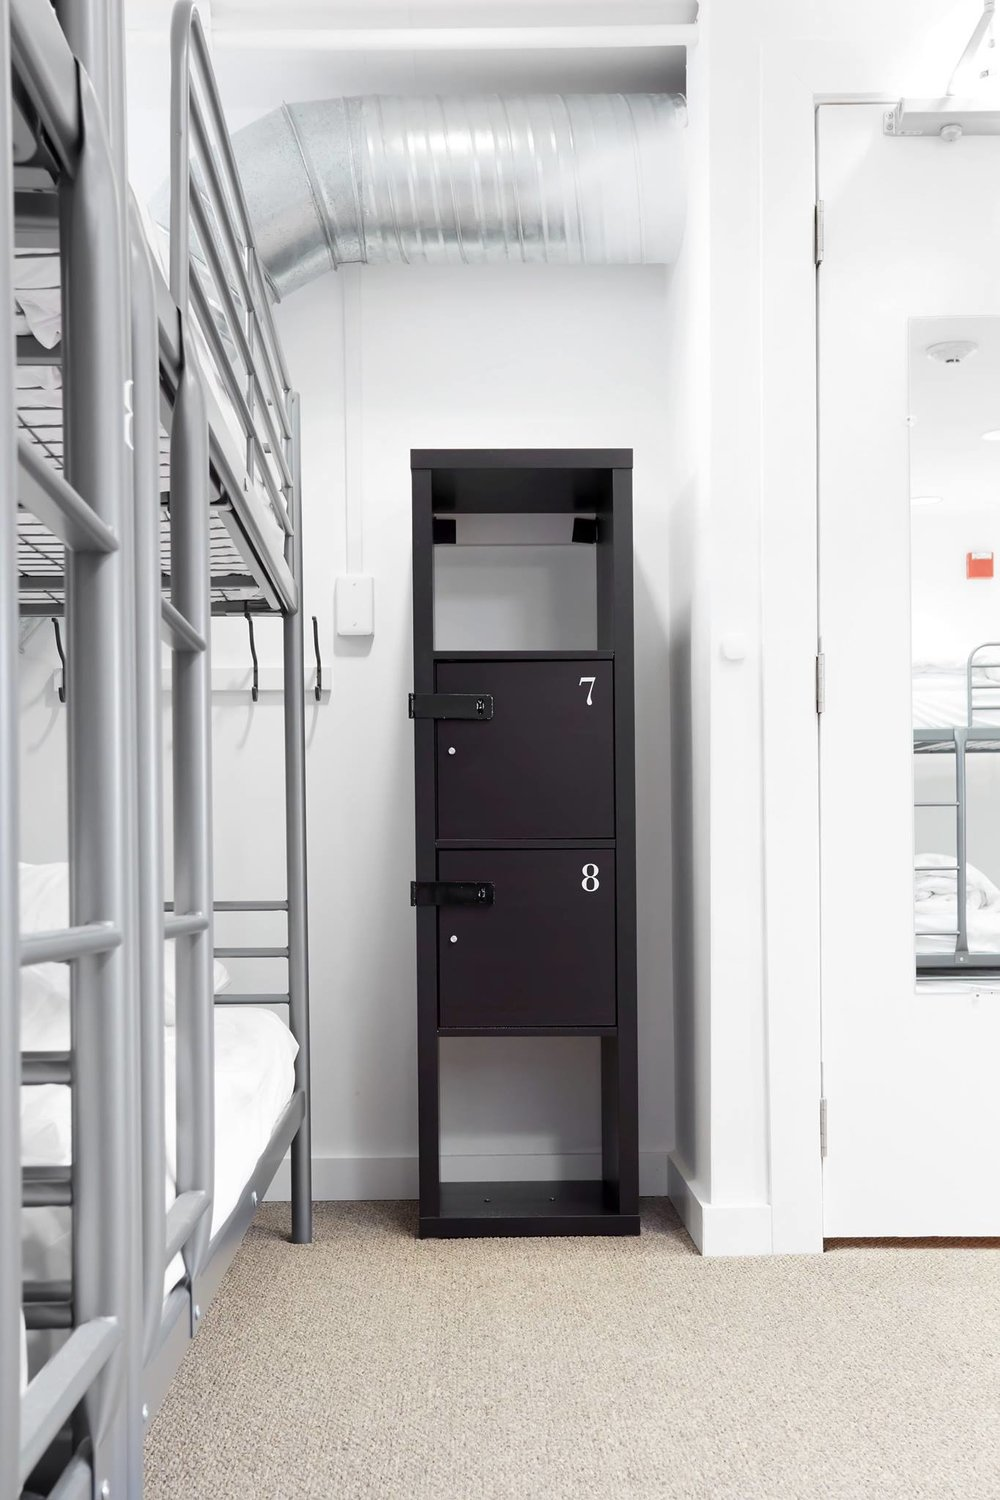 Guest lockers in a shared room